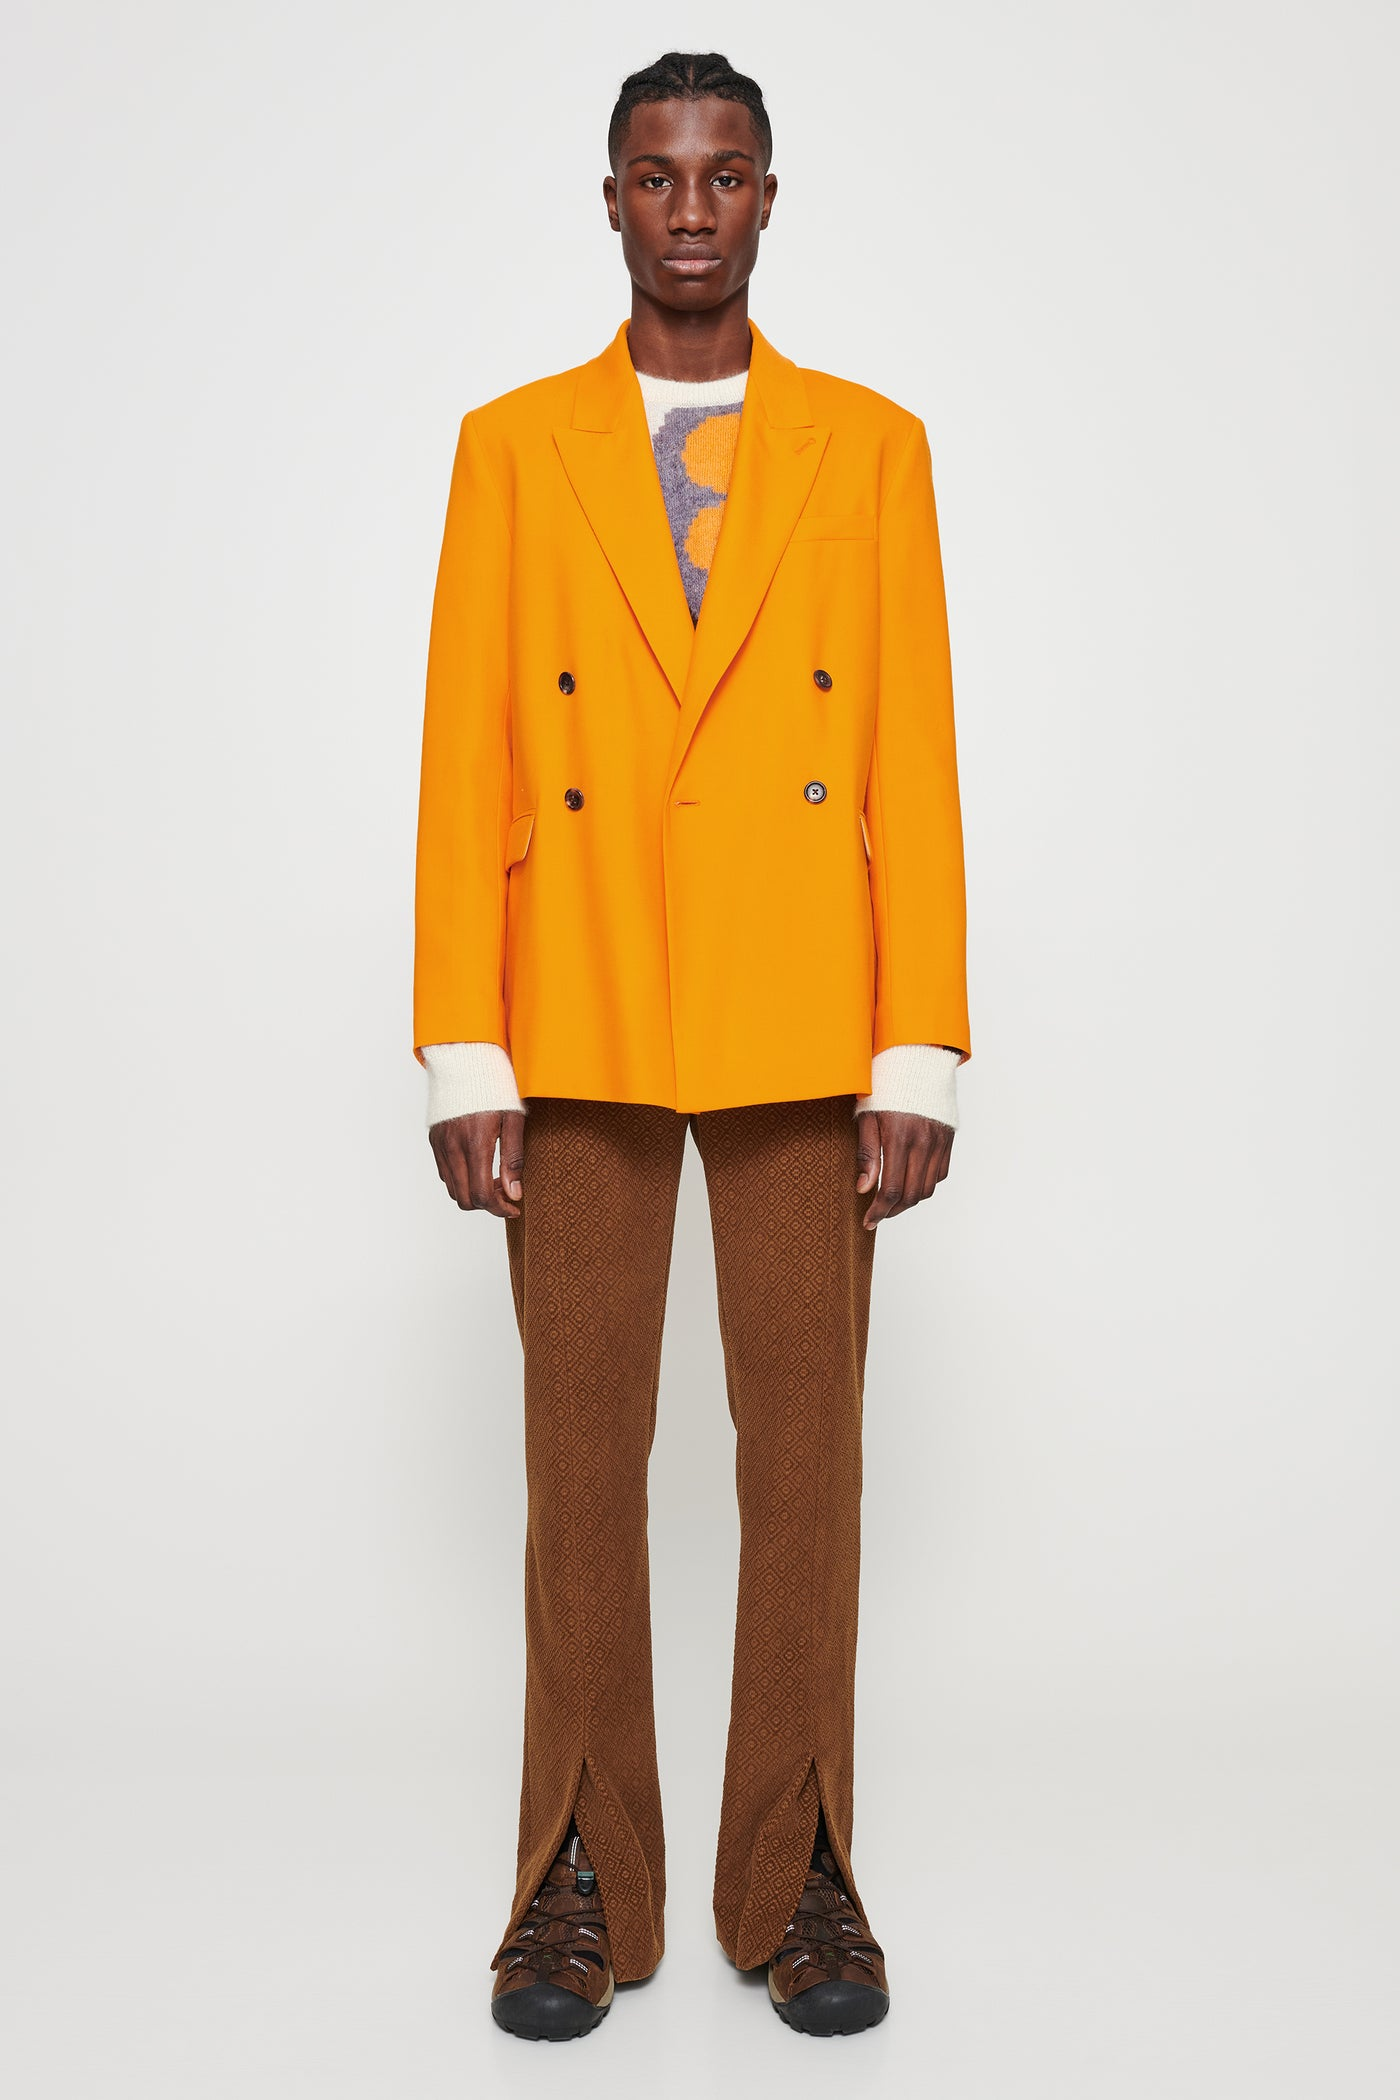 Vigar tailored double-breasted blazer orange M18W316